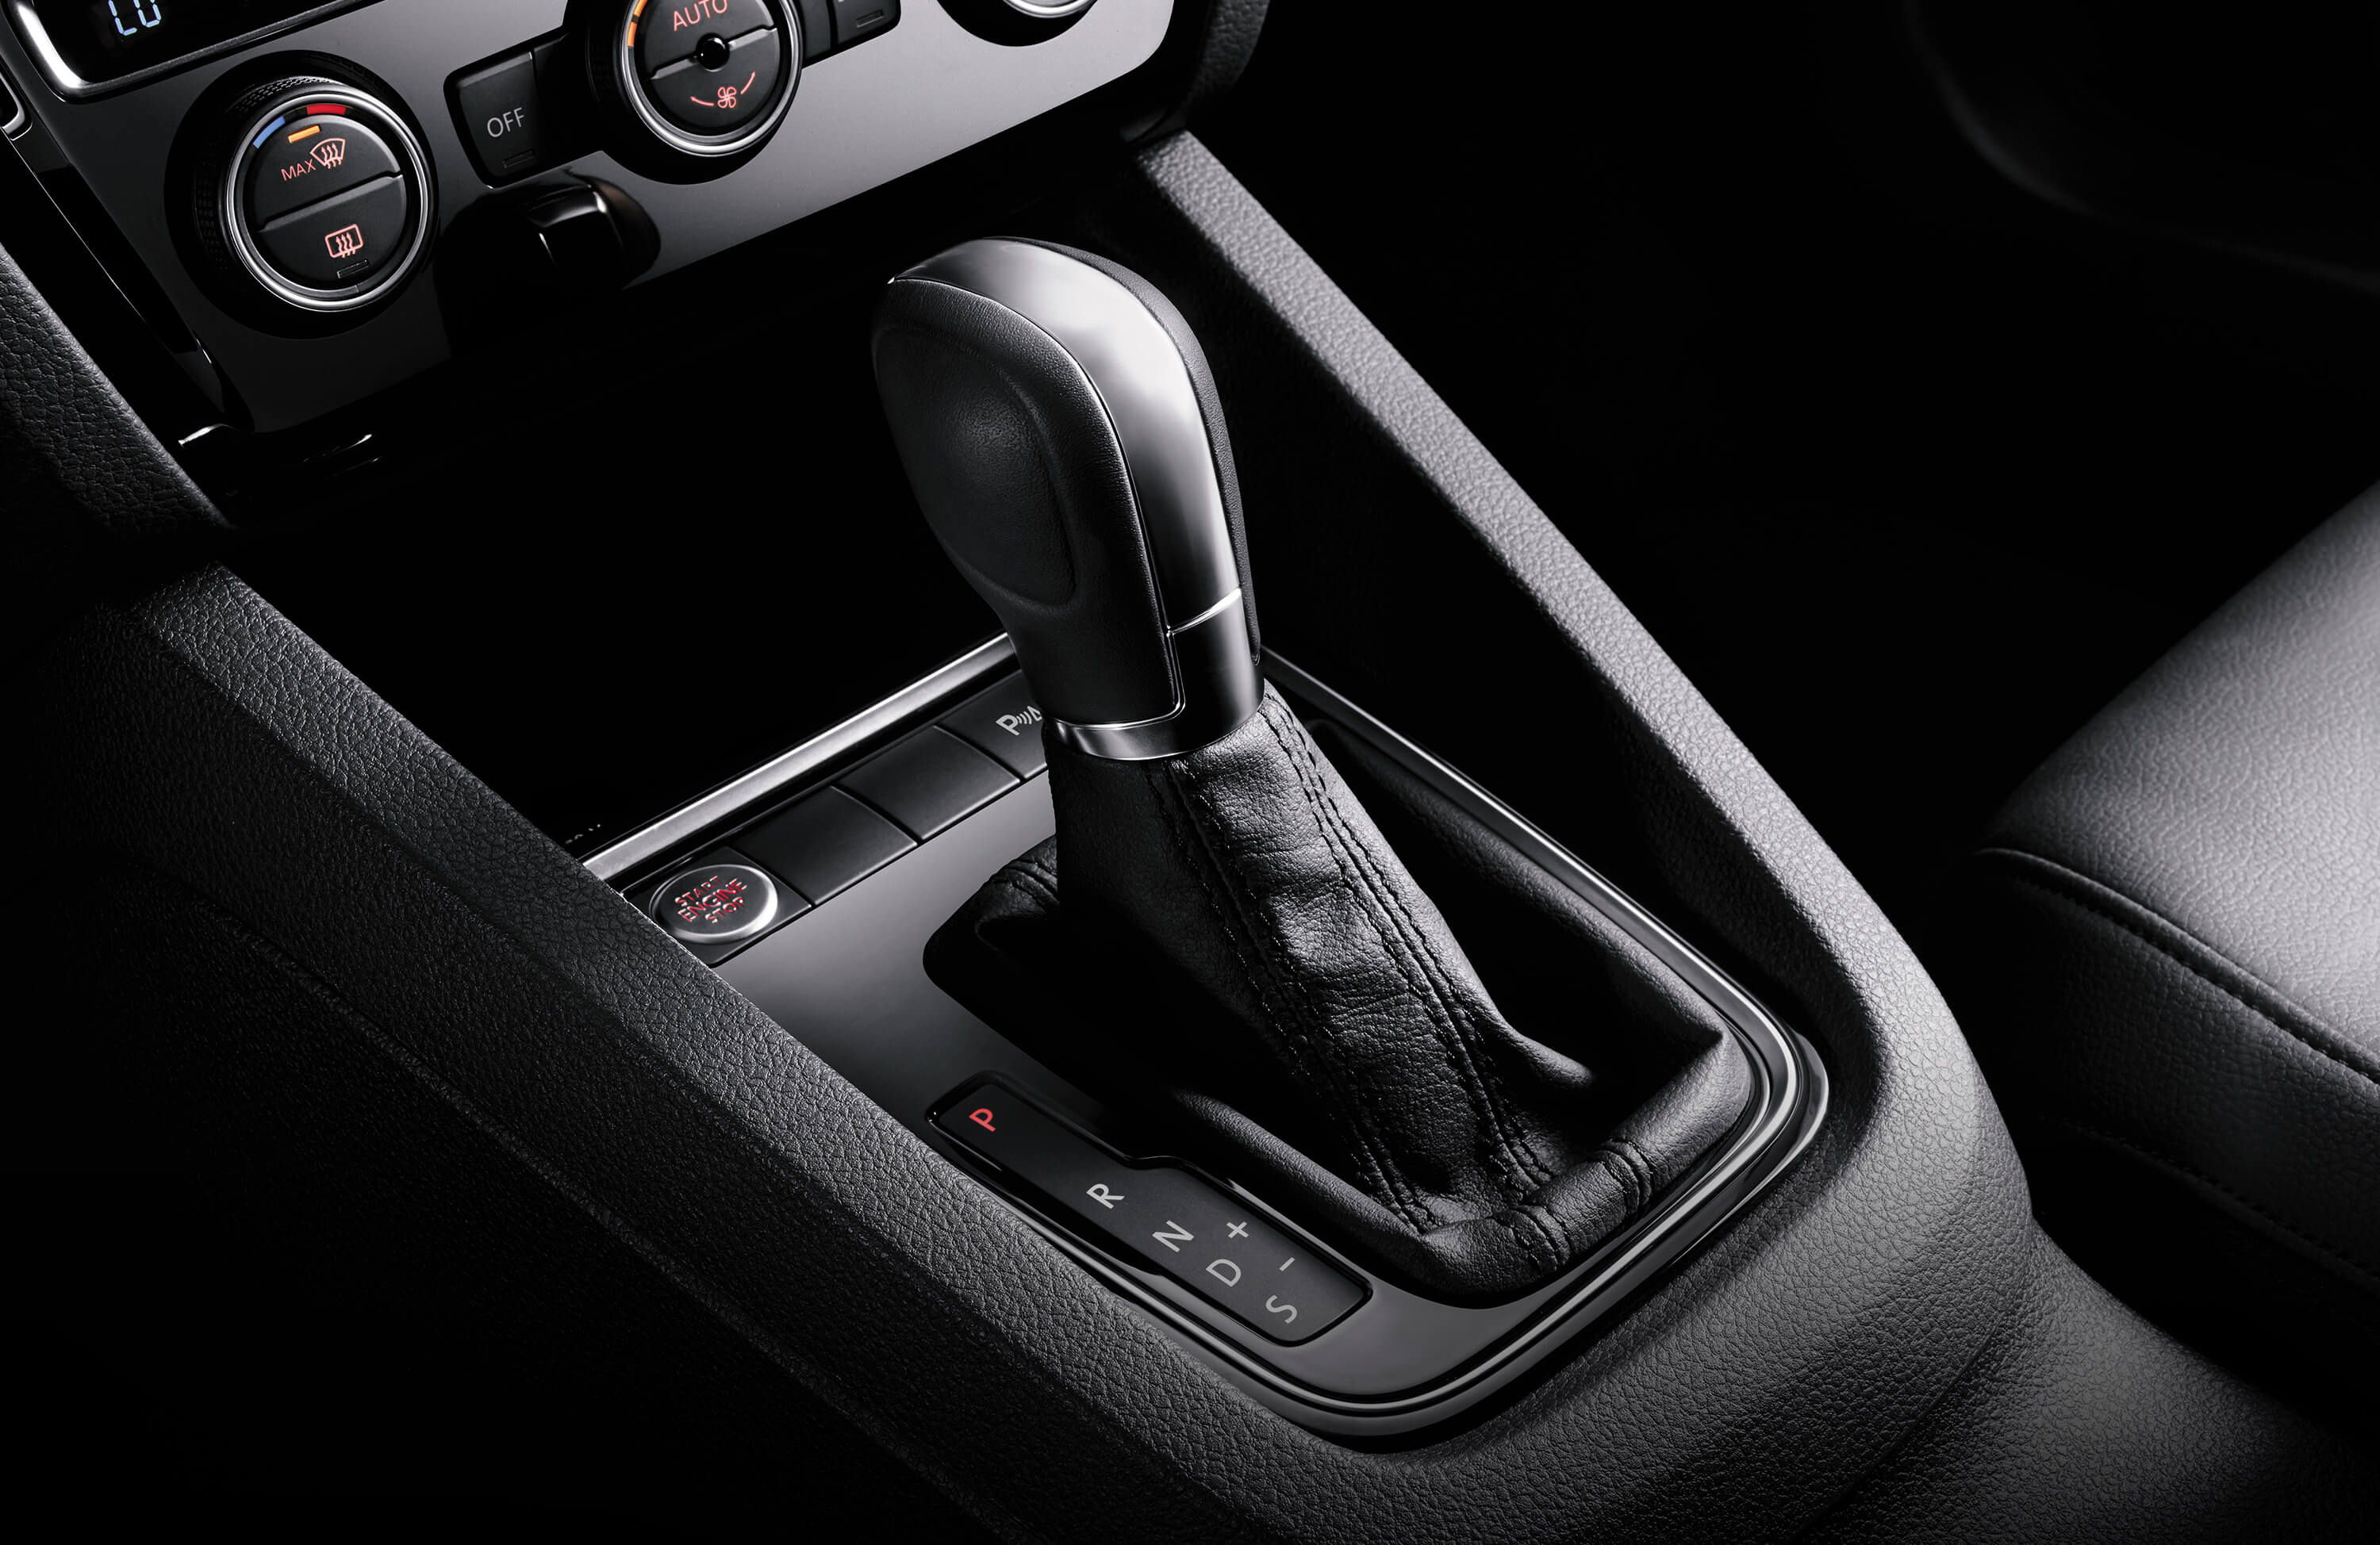 Leather-wrapped Shift Knob in the VW Jetta